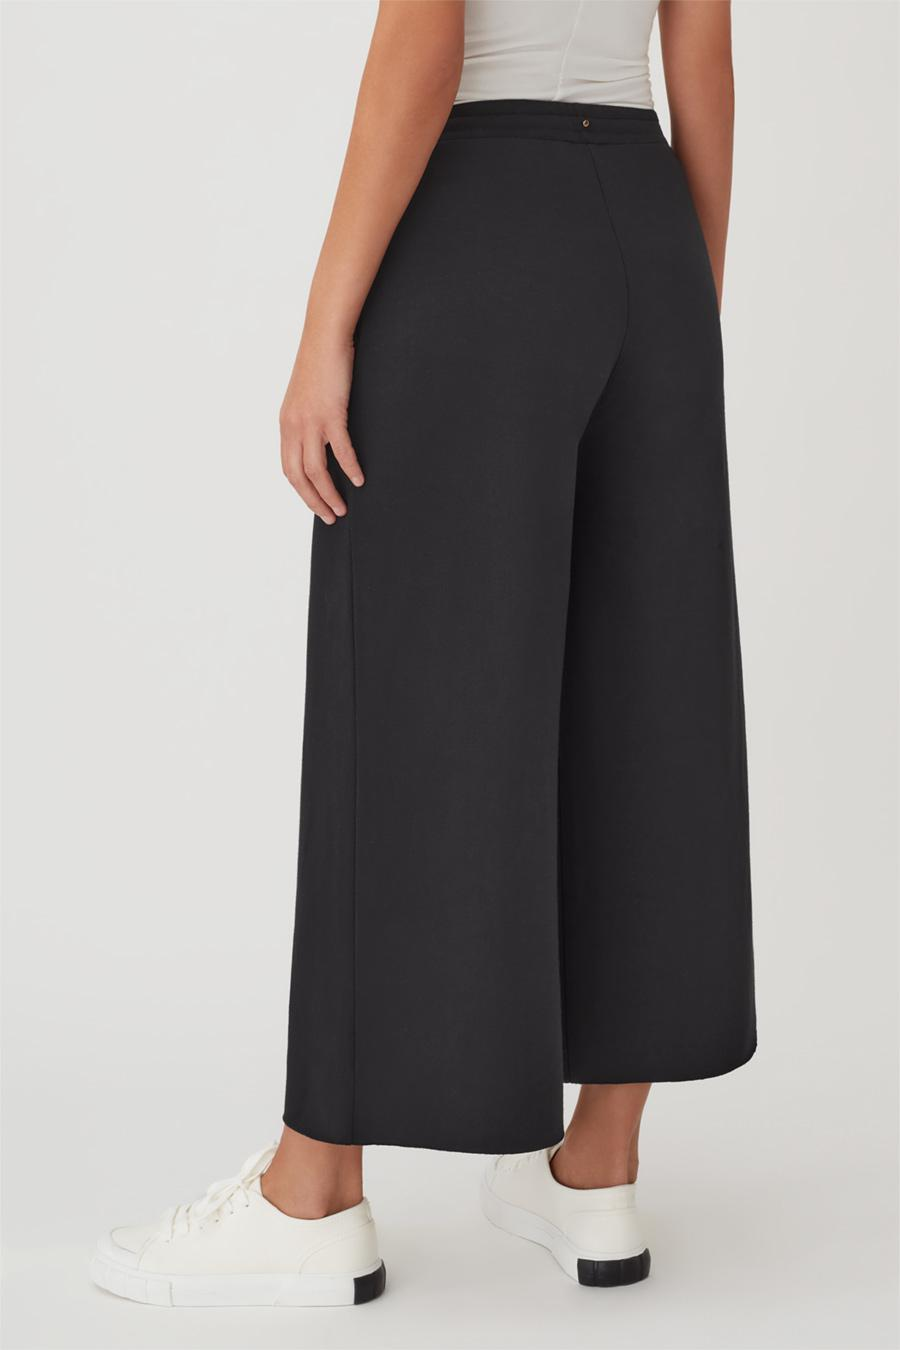 Women's French Terry Wide-Leg Cropped Pant in Black   Size: 2